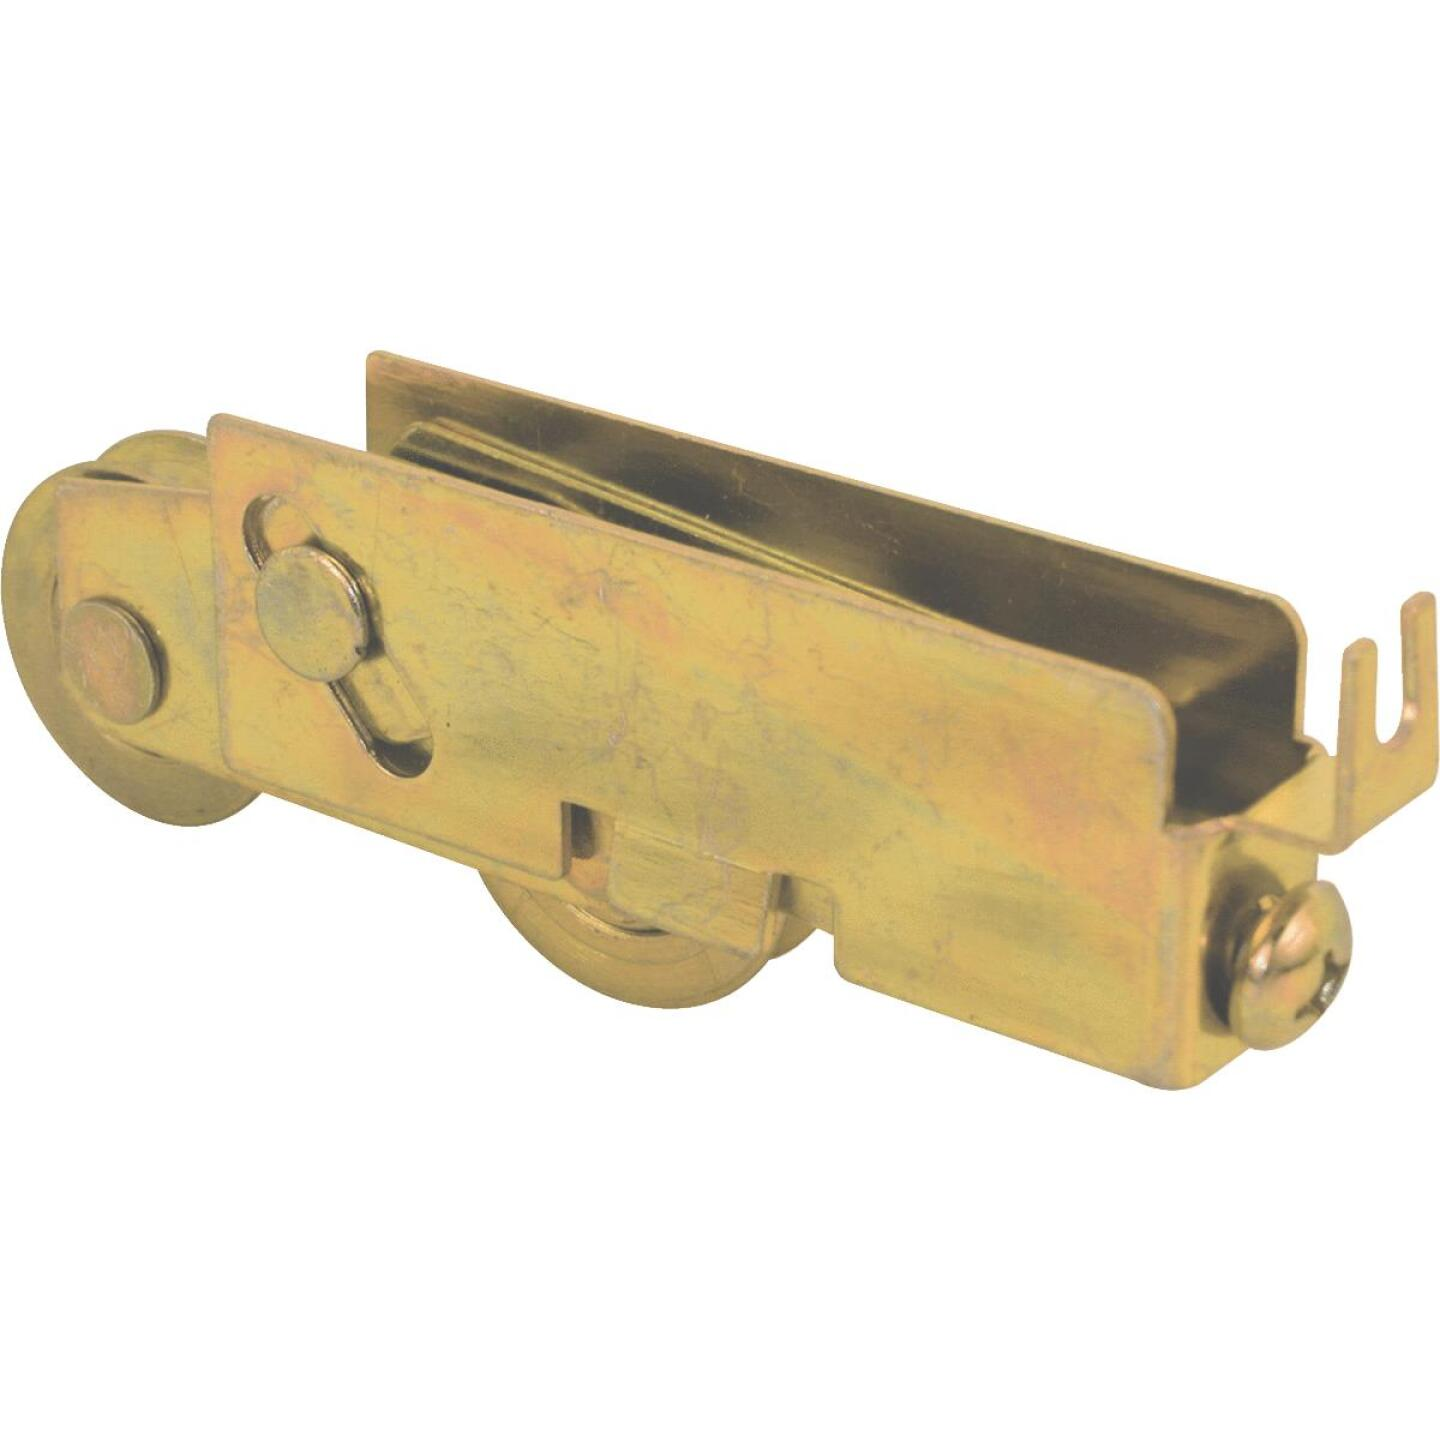 Prime-Line 1-1/8 In. Tandem Steel Patio Door Roller with Housing Assembly Image 2